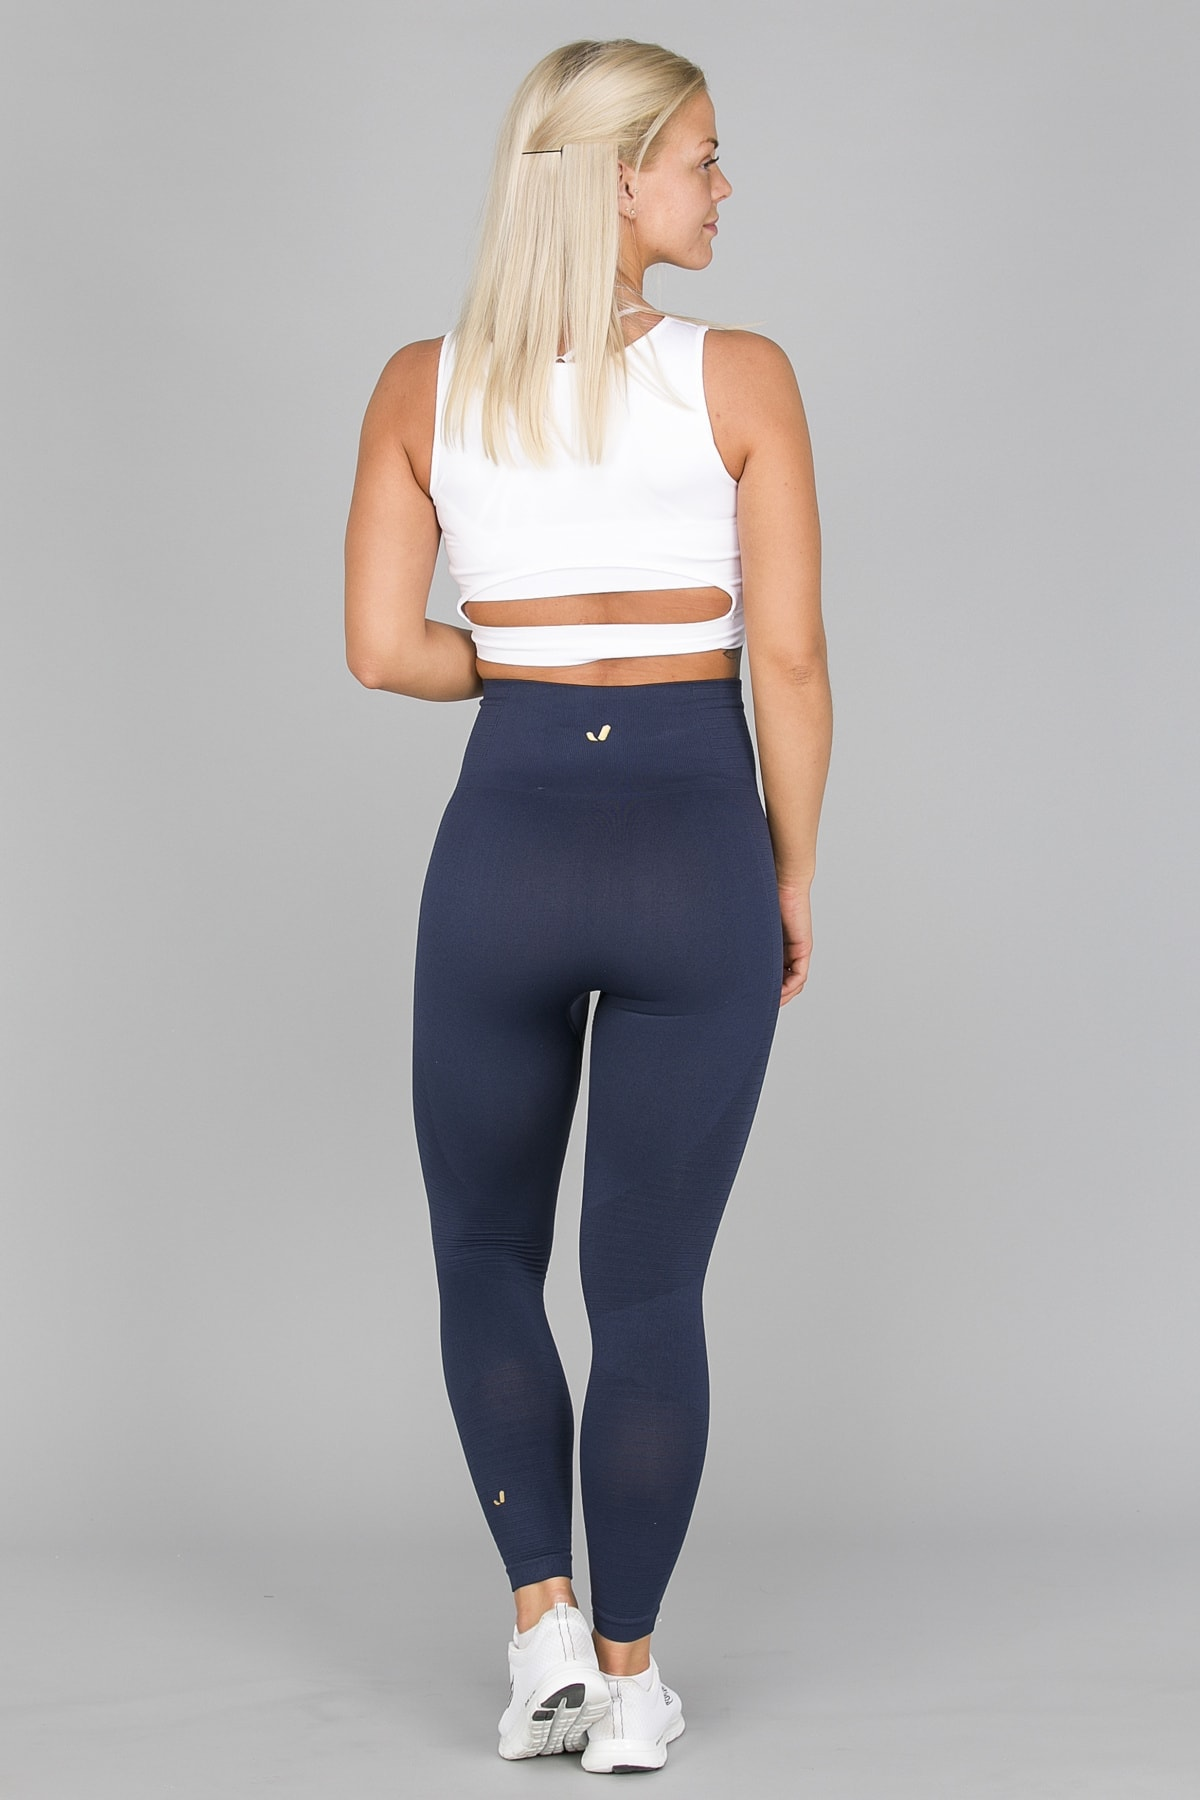 Jerf Gela 2.0 tights Navy Blue20